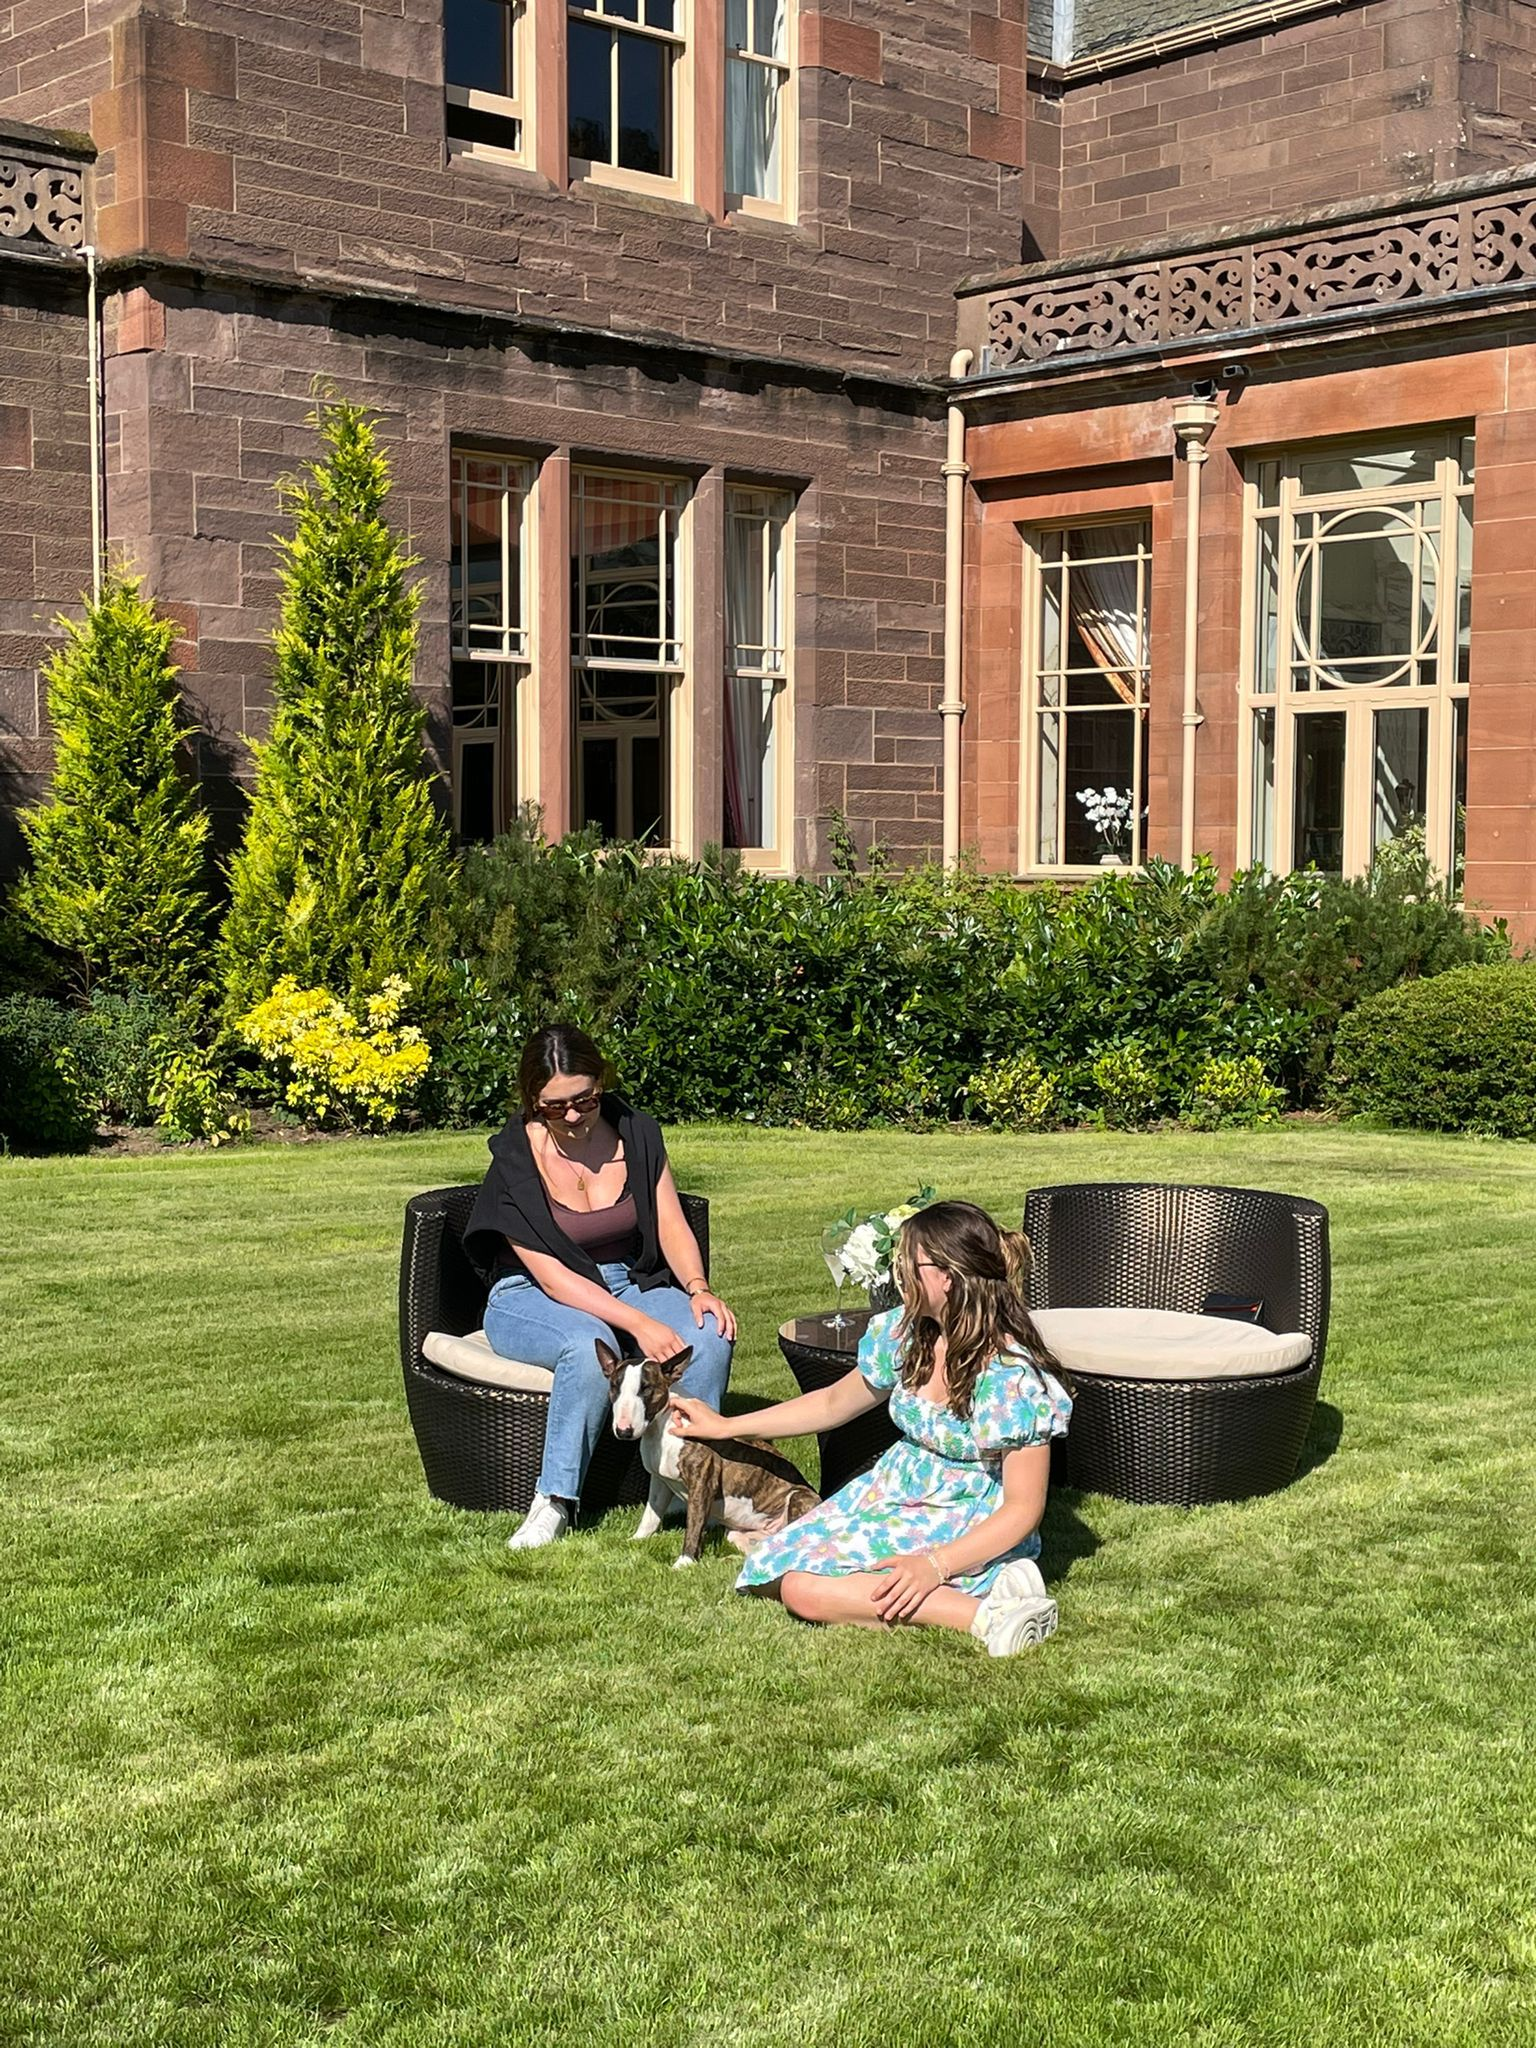 Auchterarder House - playing with the dog